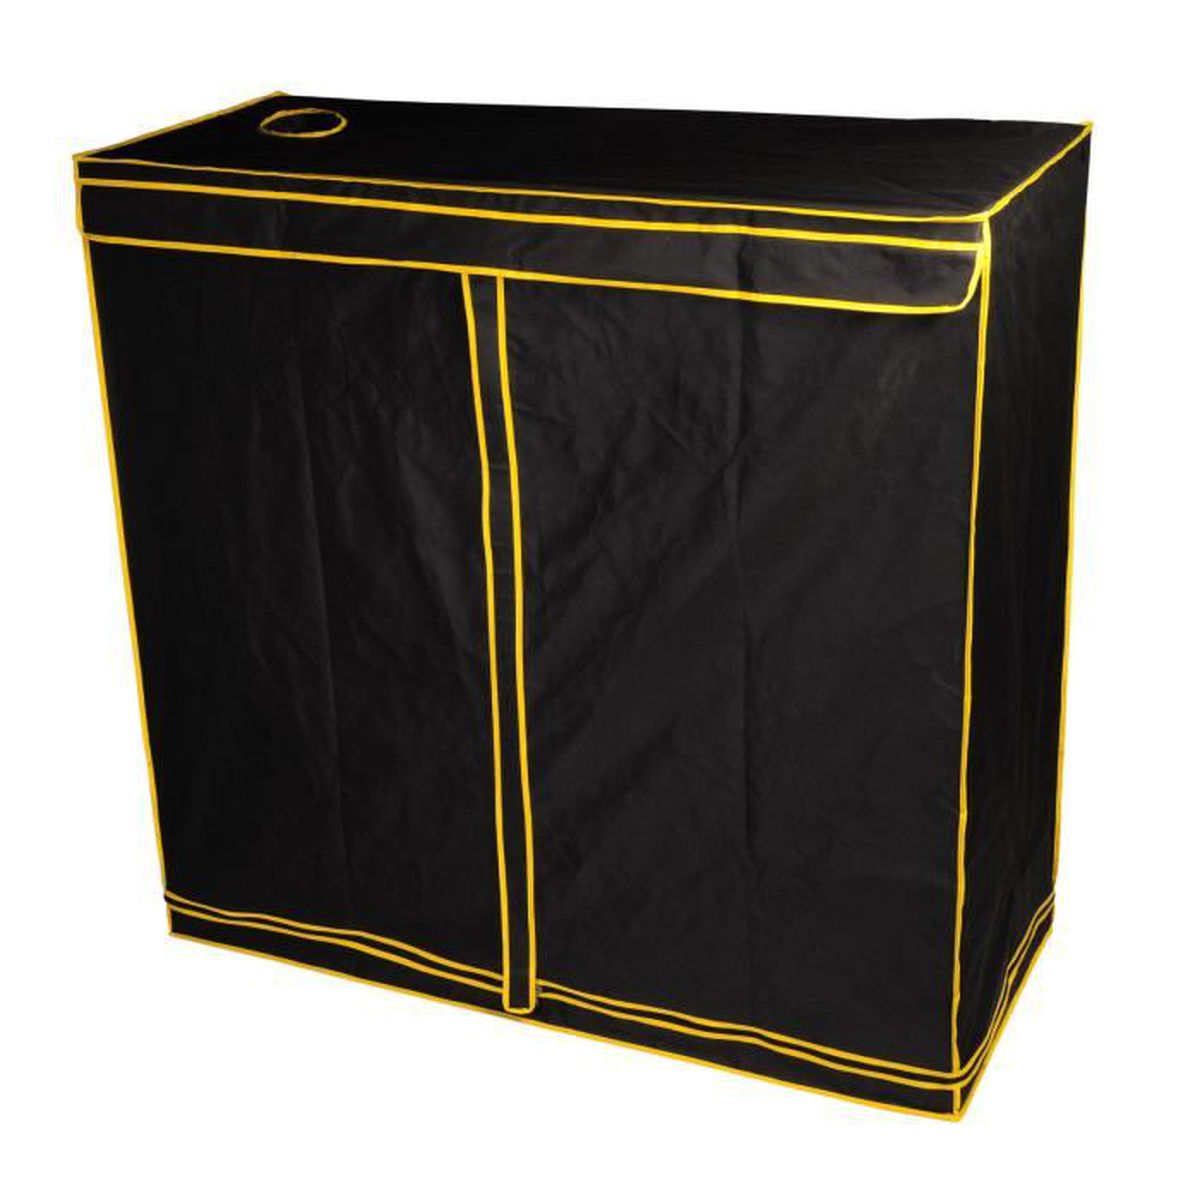 165x65x160cm chambre culture indoor jardin homebox plante grow tent dark room achat vente. Black Bedroom Furniture Sets. Home Design Ideas